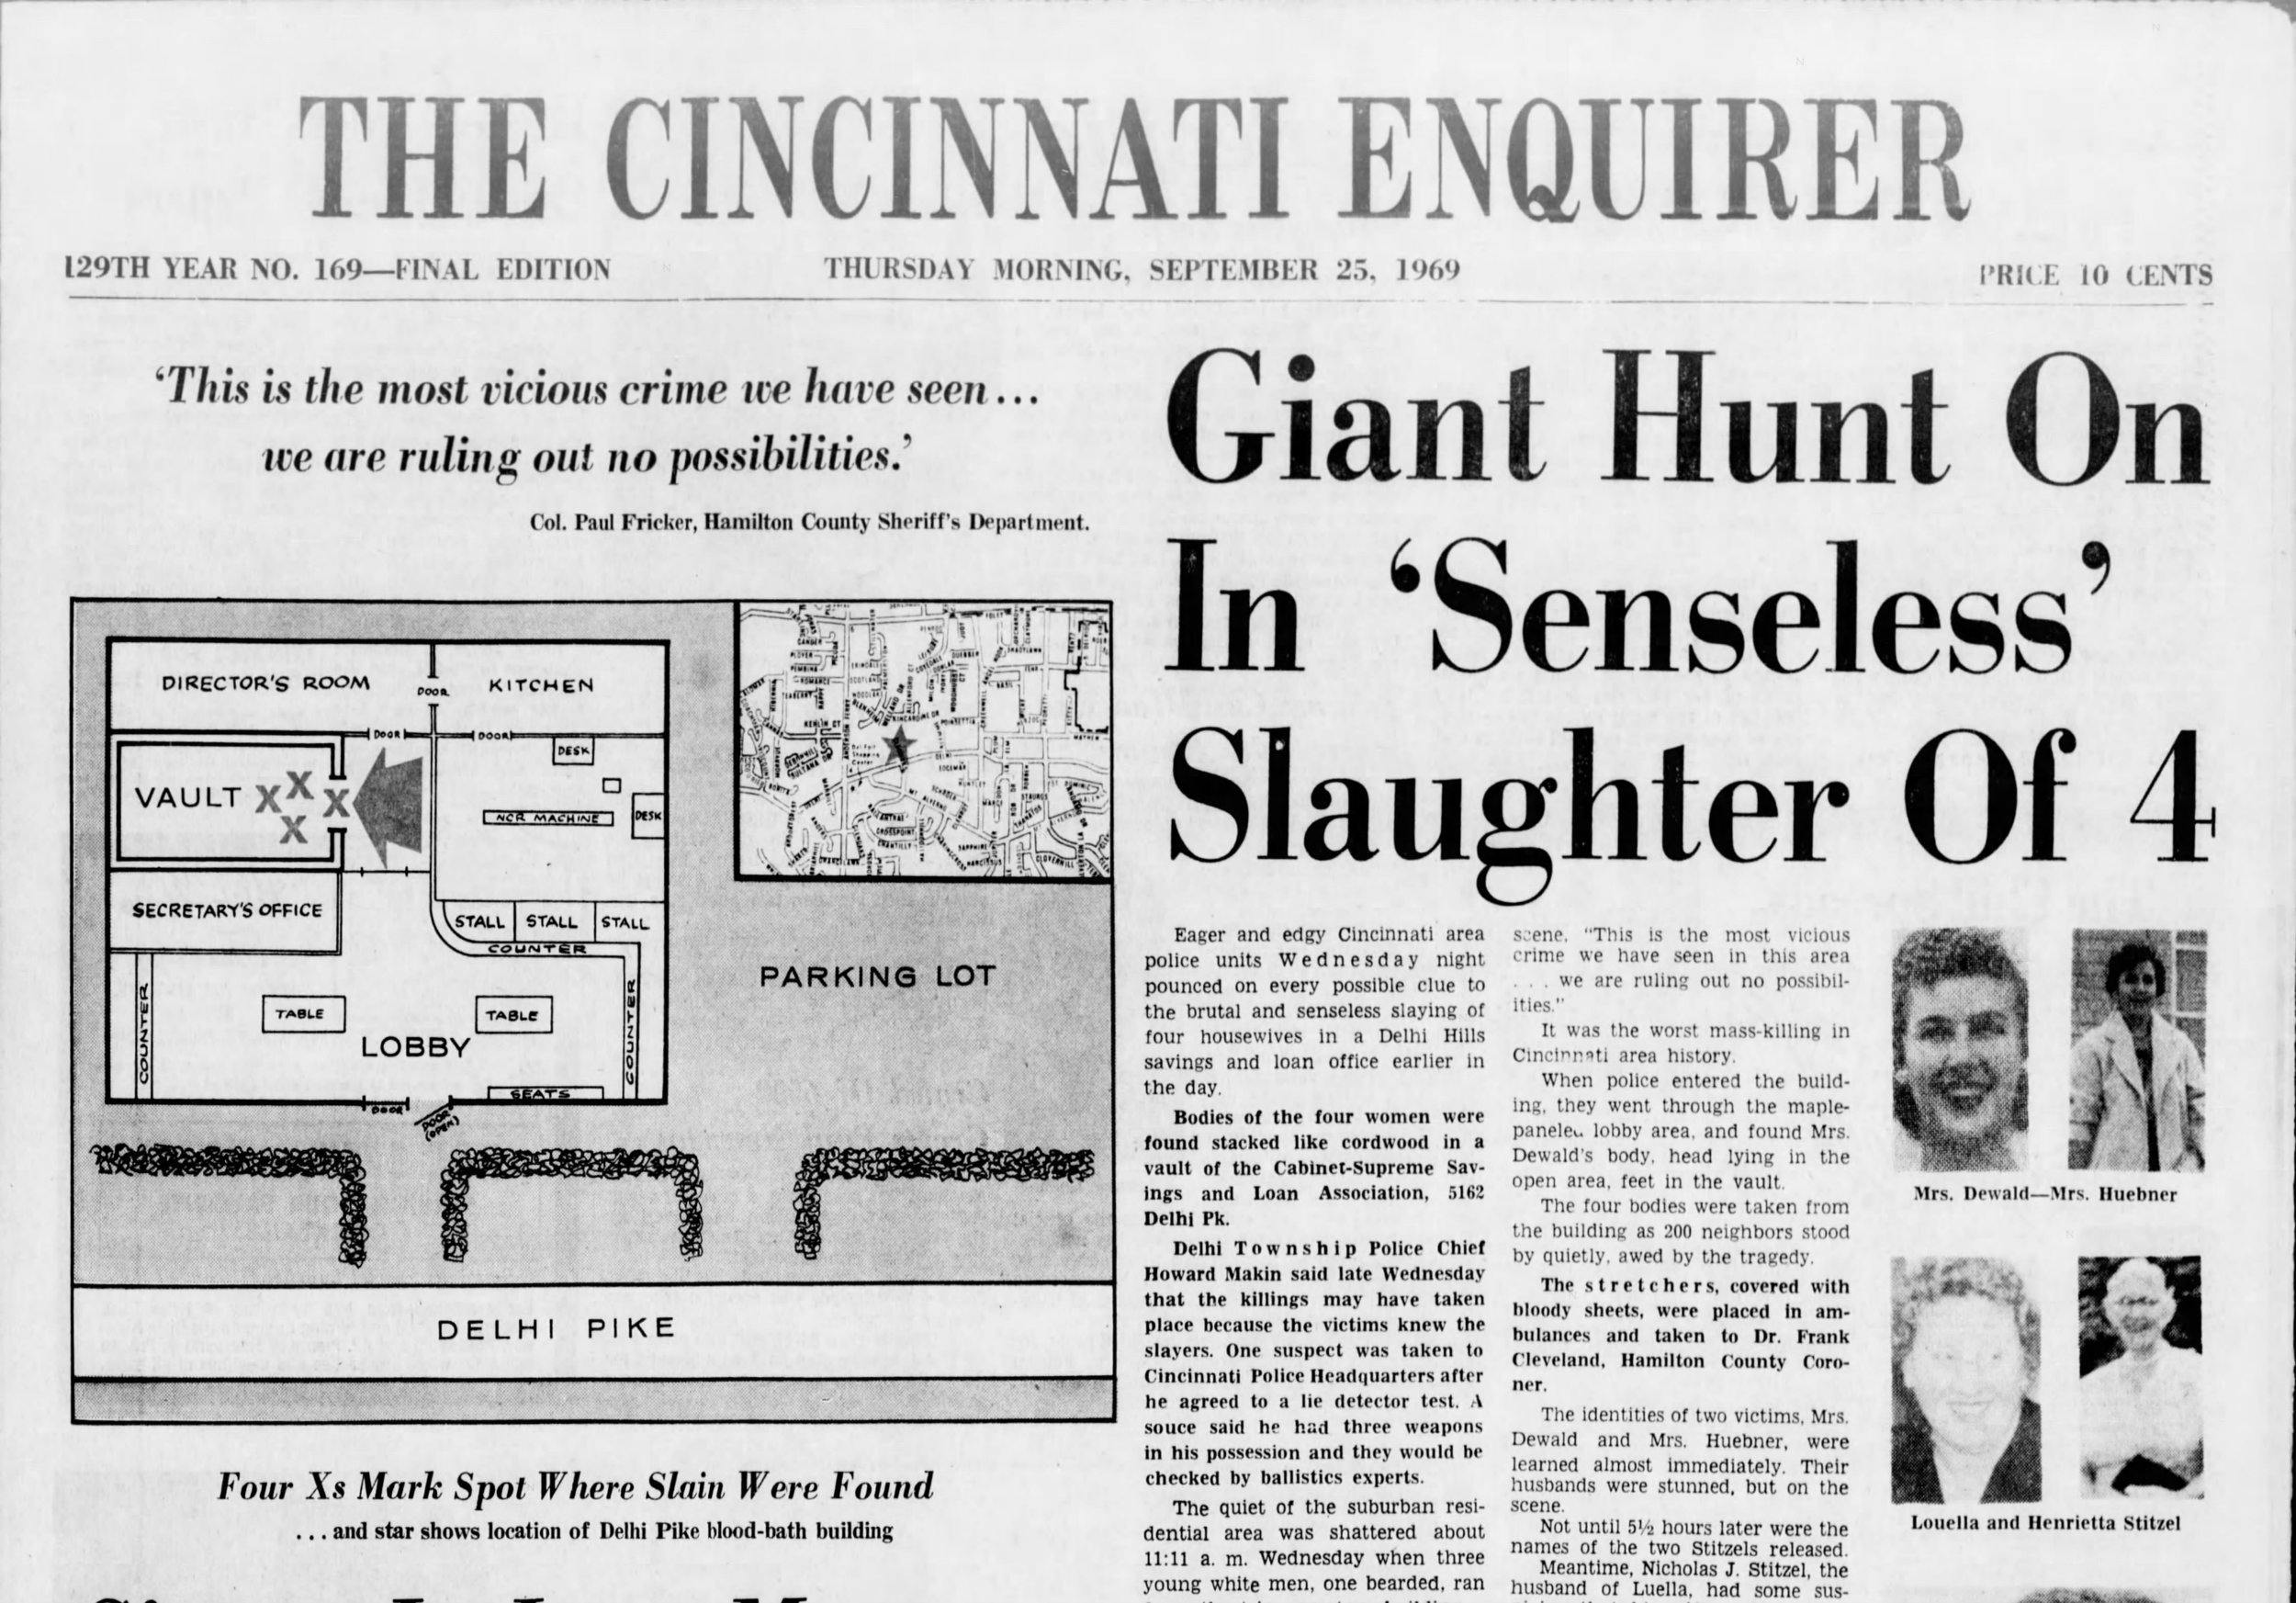 Front page of the Cincinnati Enquirer Sept. 25, 1969.